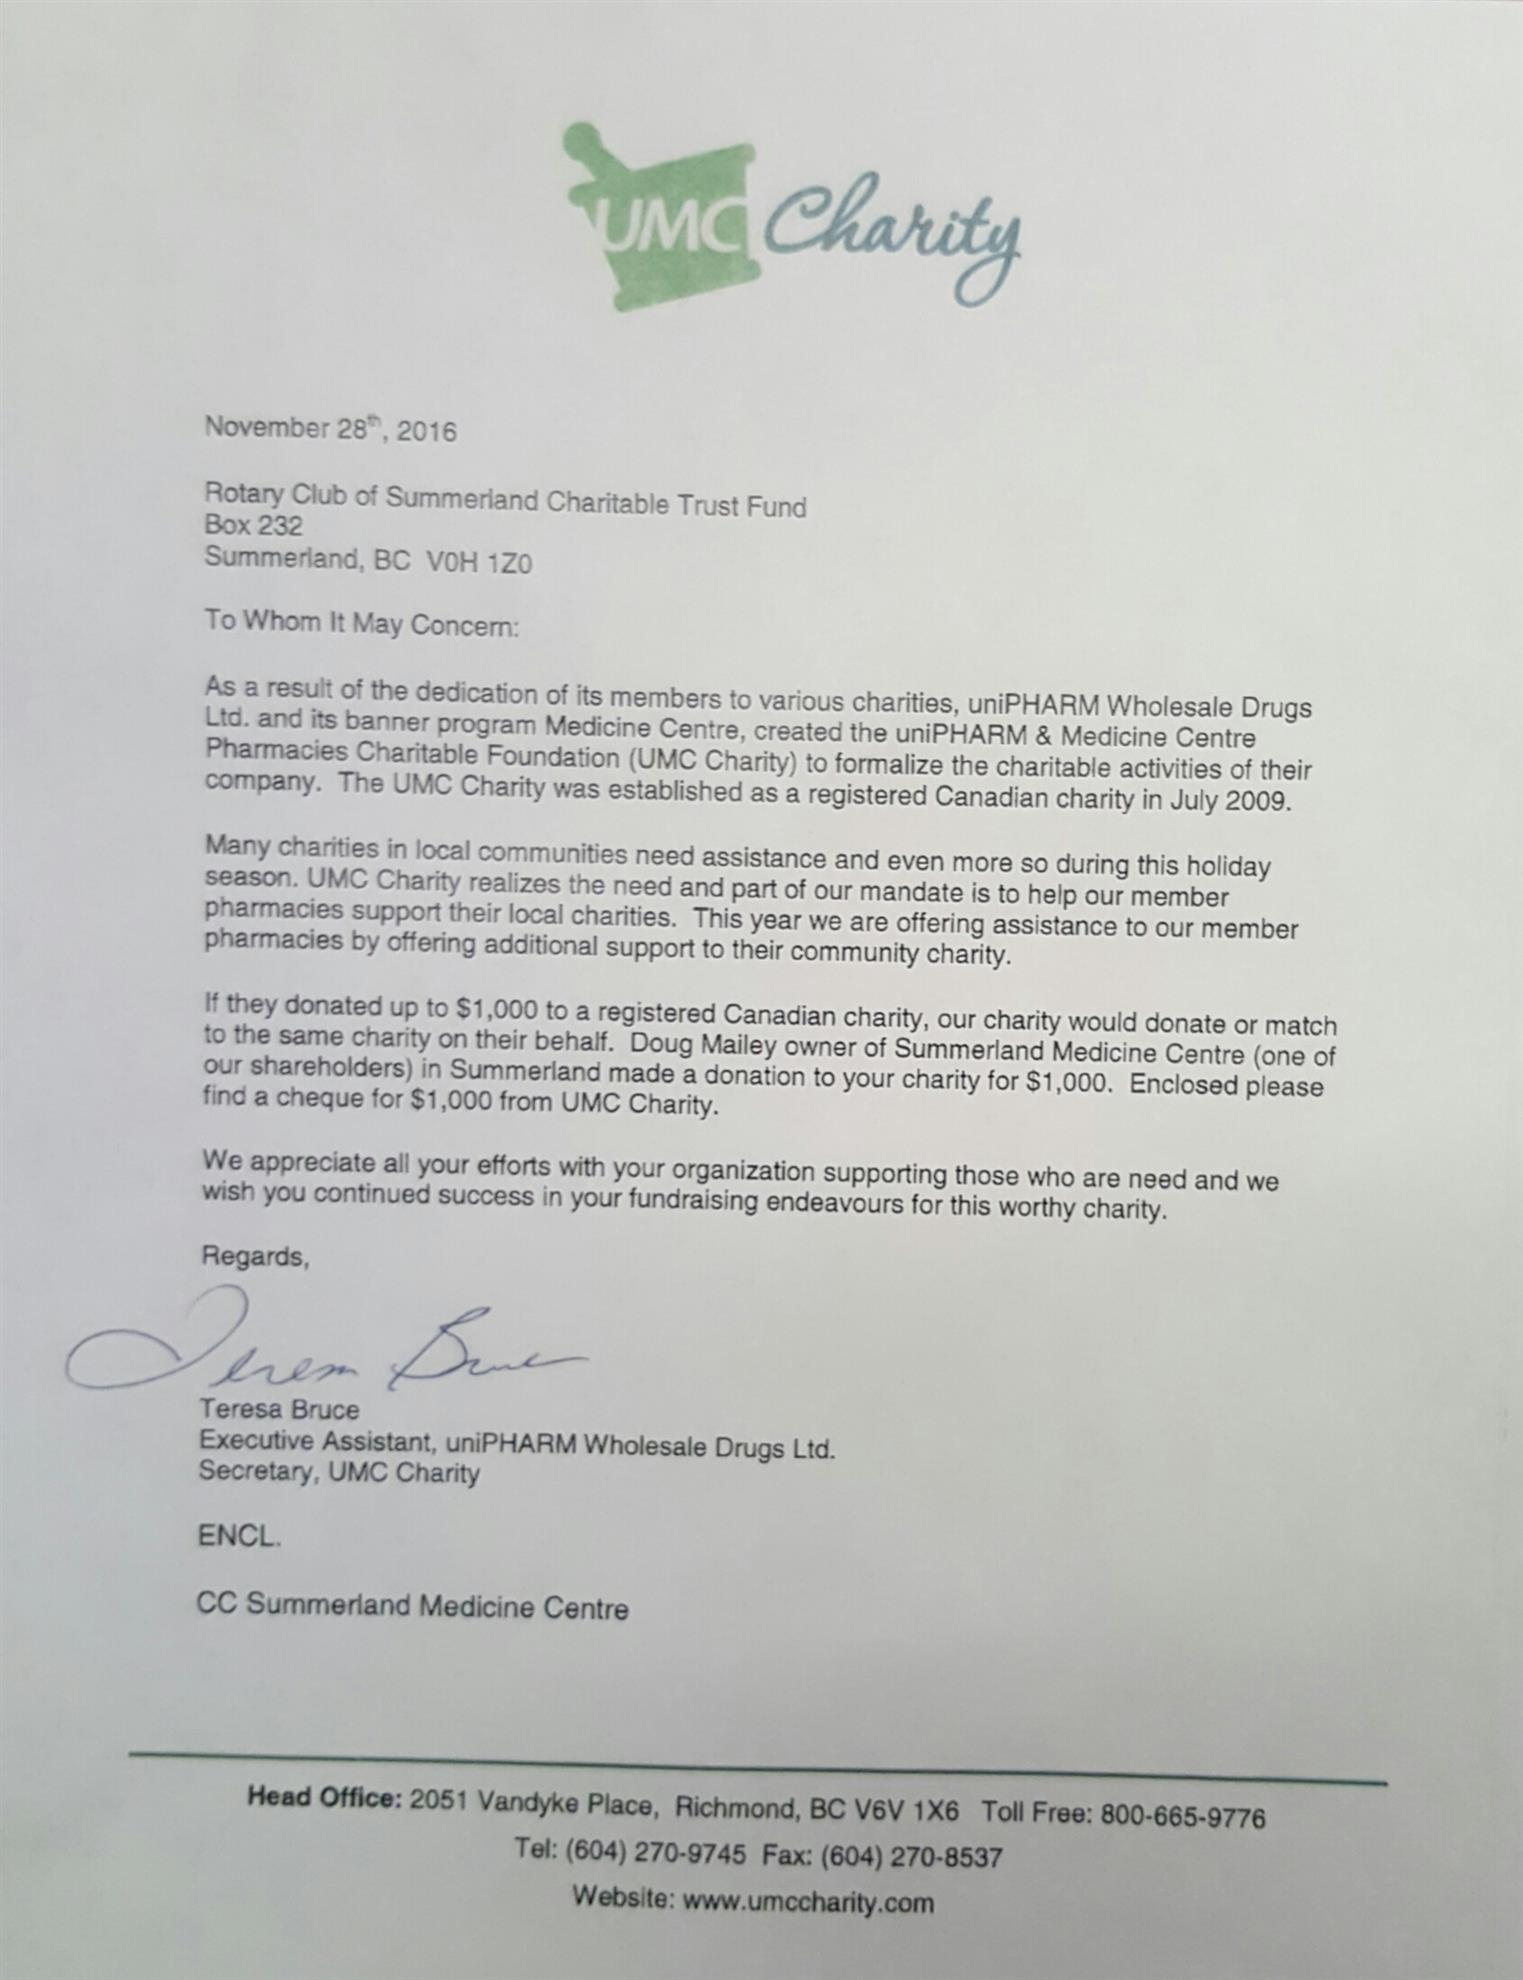 Another generous donation from doug mailey rotary club of summerland the club received the following letter from umc charity see below thank you for your generous donation of 2000 doug it is appreciated aljukfo Image collections